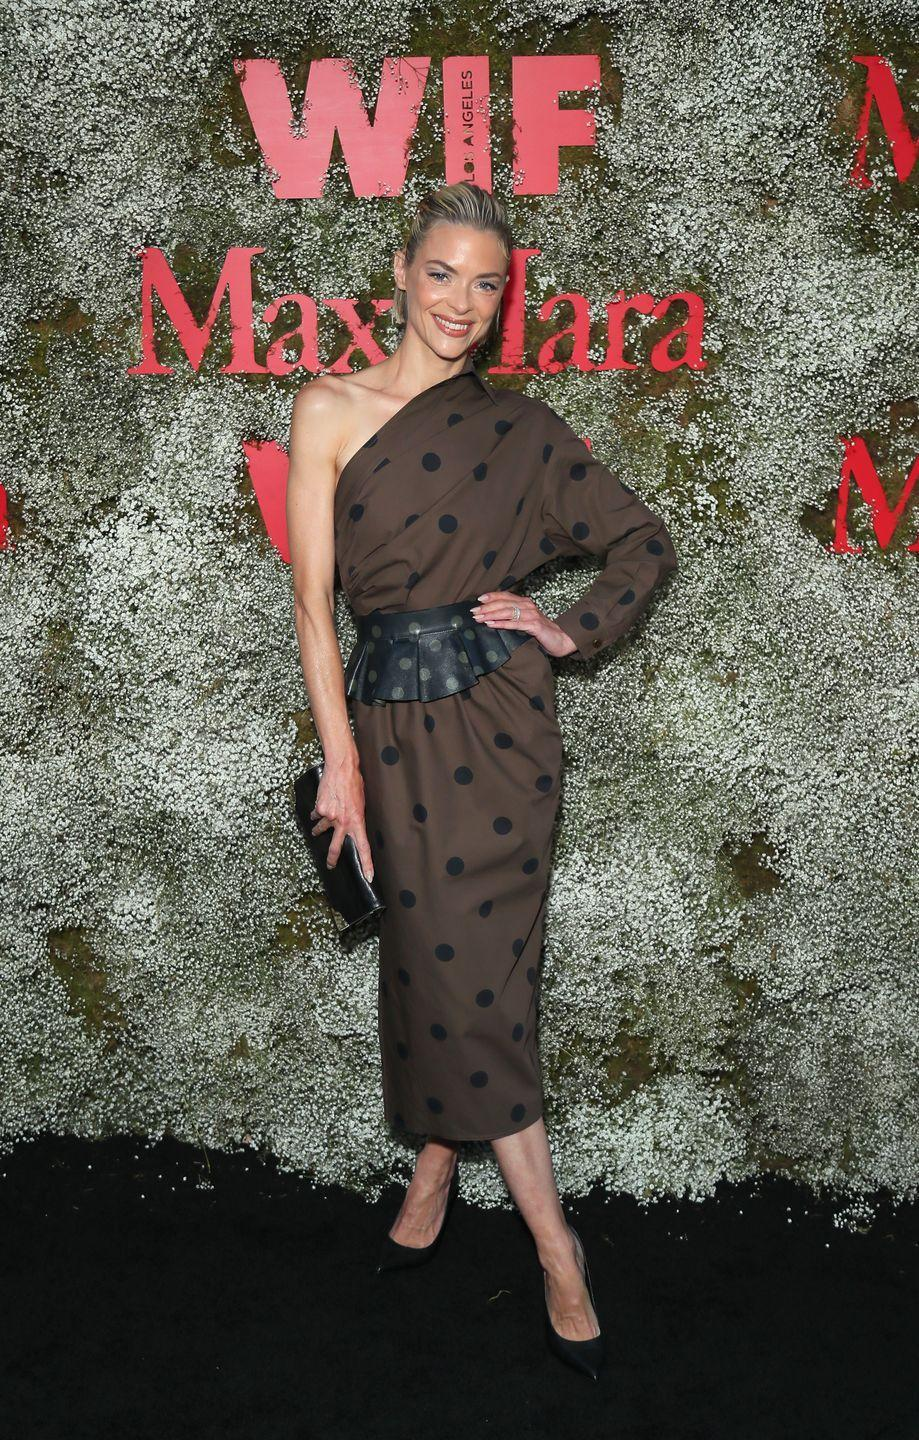 <p>We love Jaime King's big polka dot moment. The one shoulder tempers the sweetness and the coordinating belt is on point.</p>